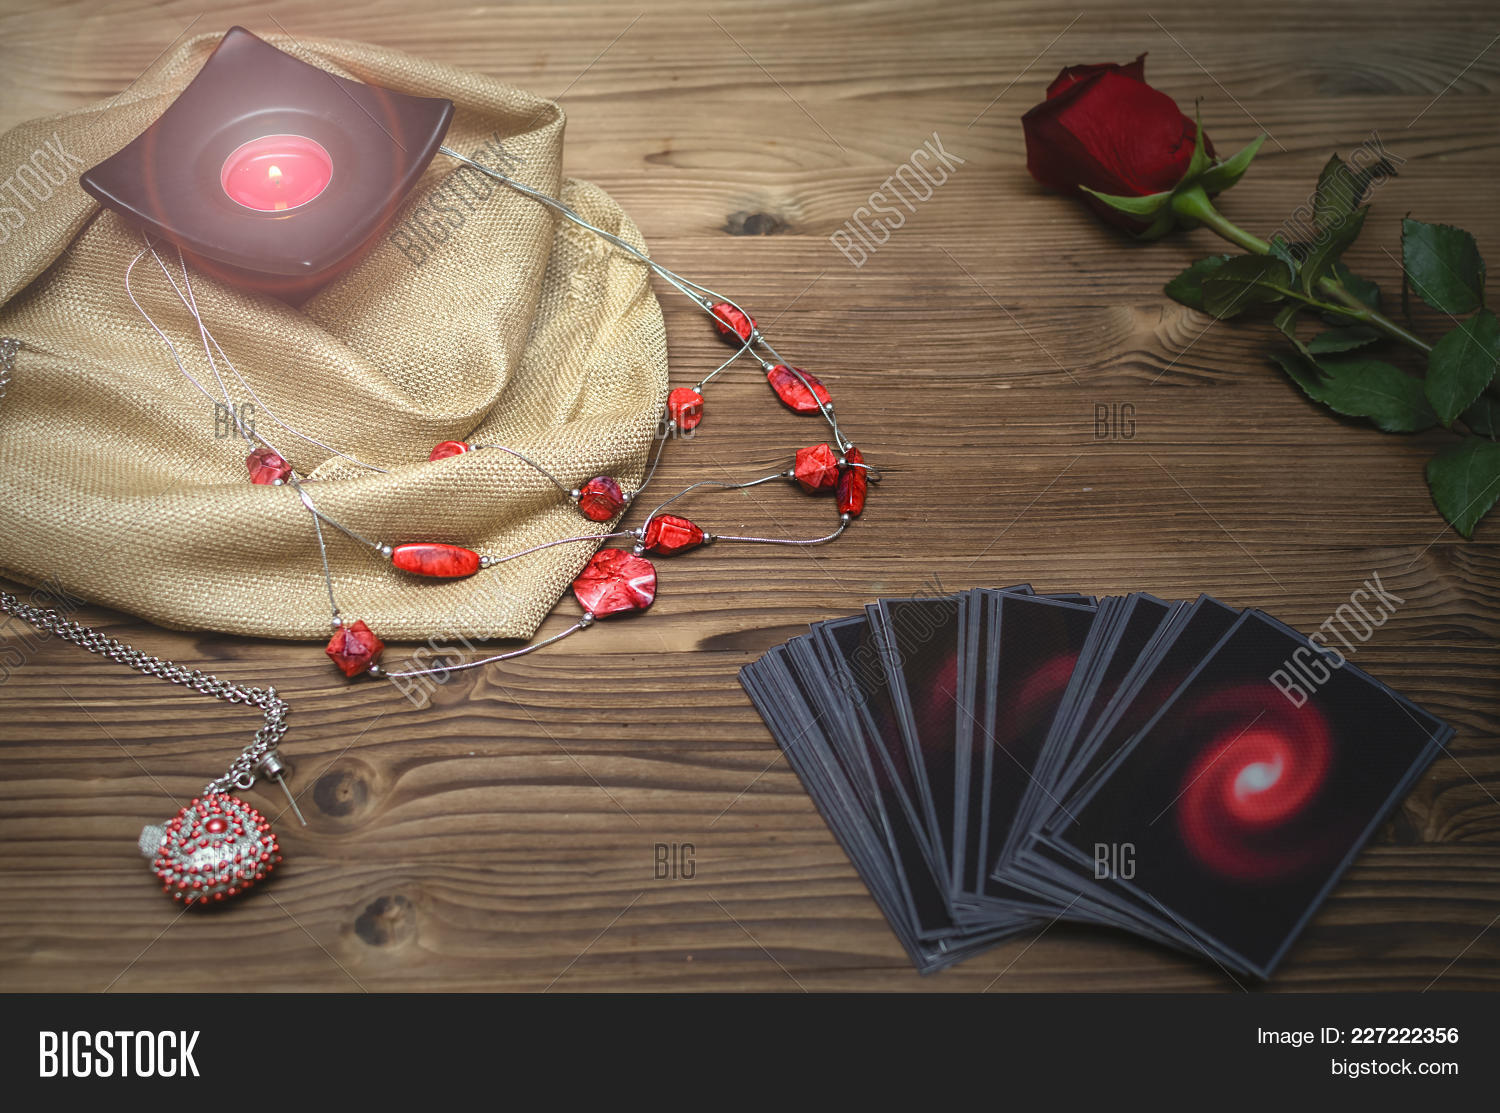 Tarot Cards Rose Image & Photo (Free Trial) | Bigstock